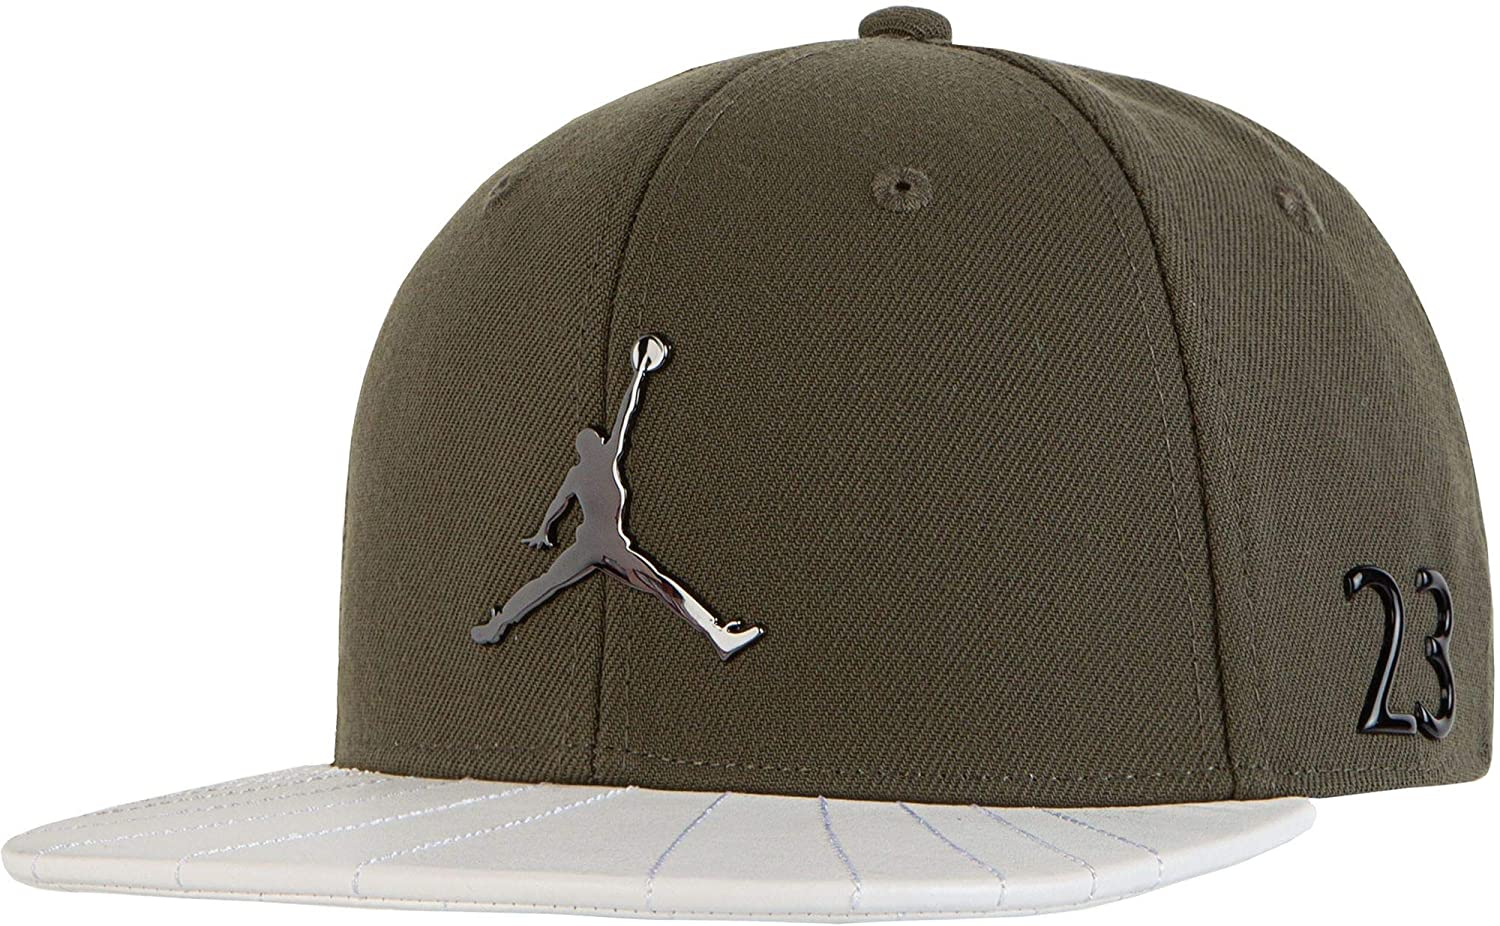 e548fdd69c0 Jordan Boys  Retro 12 Snapback Hat (Olive) at Amazon Men s Clothing store